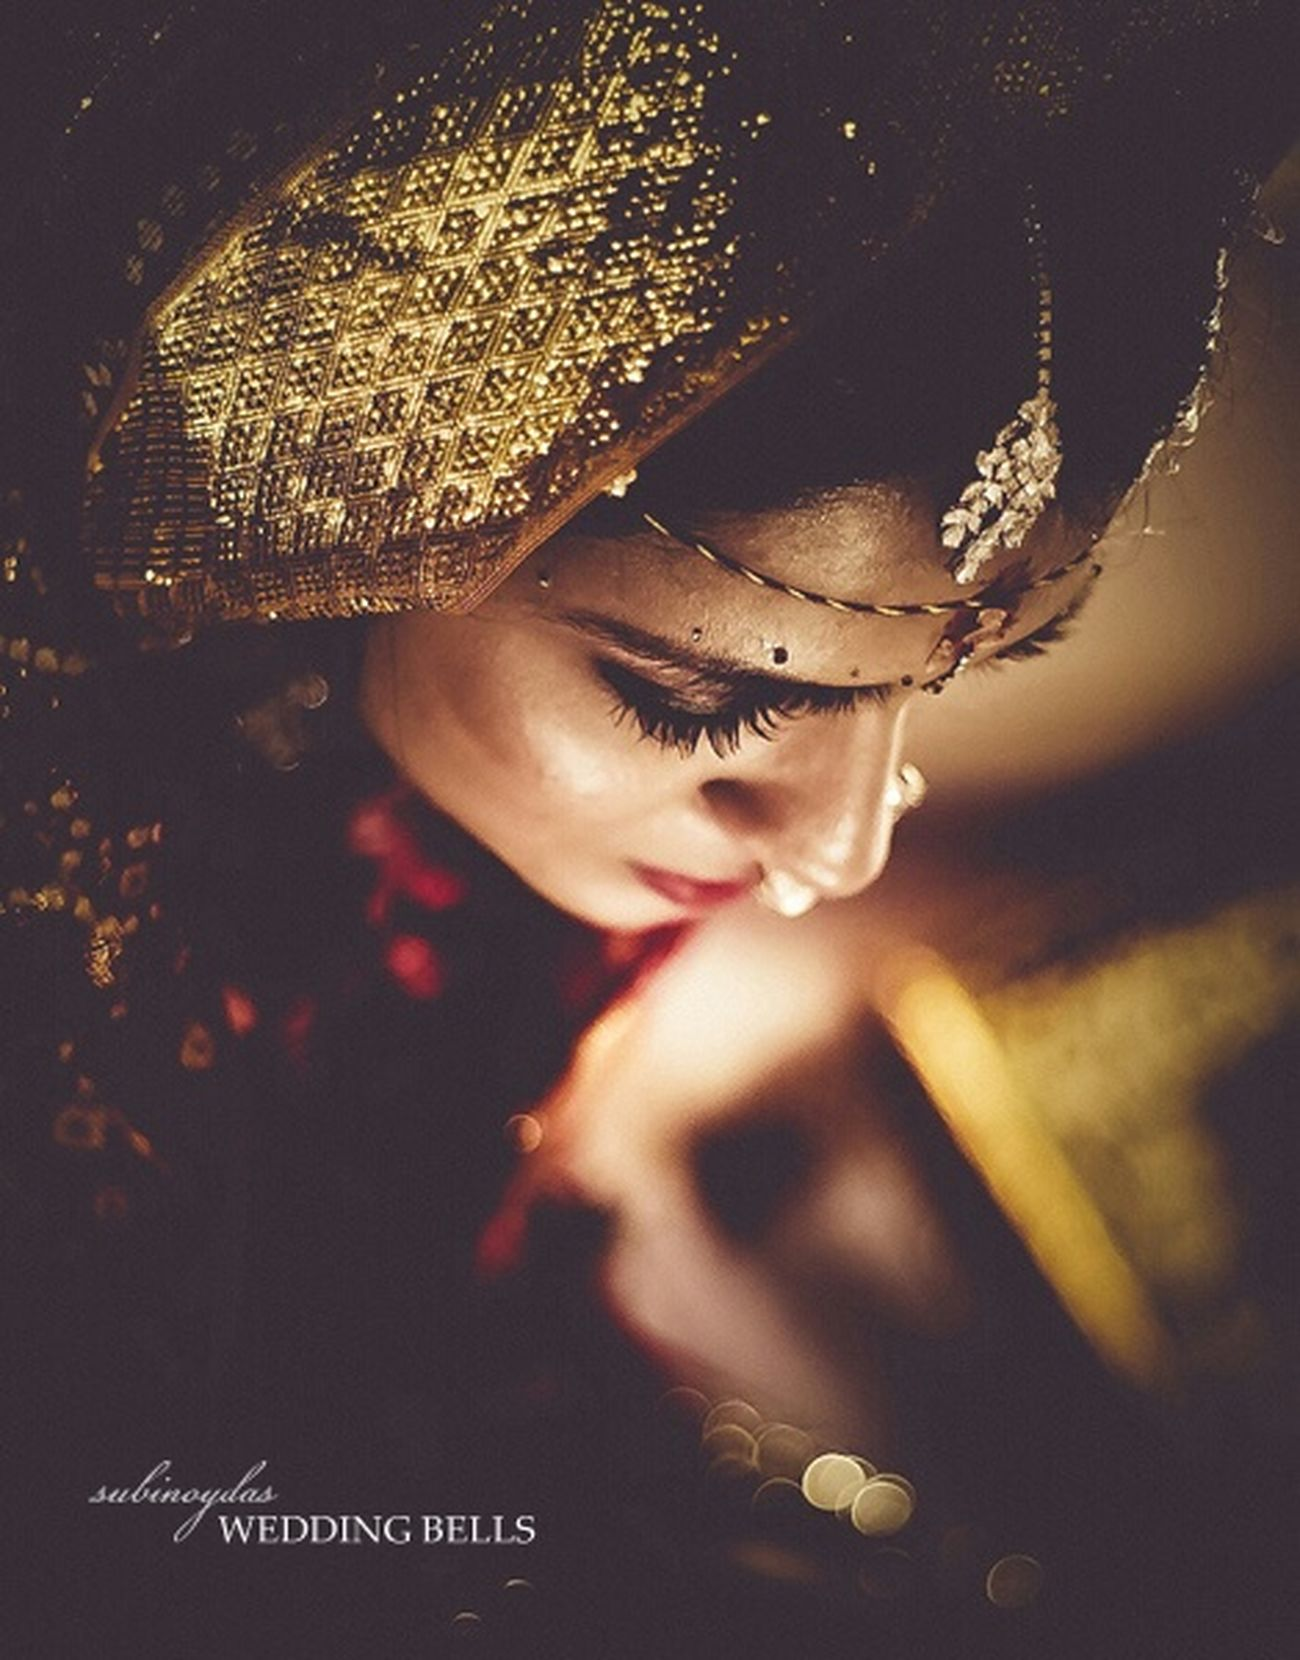 Bride Delhiphotographers Phoro Of The Day Wedding Photography Destinationwedding Subinoy Eye Em India